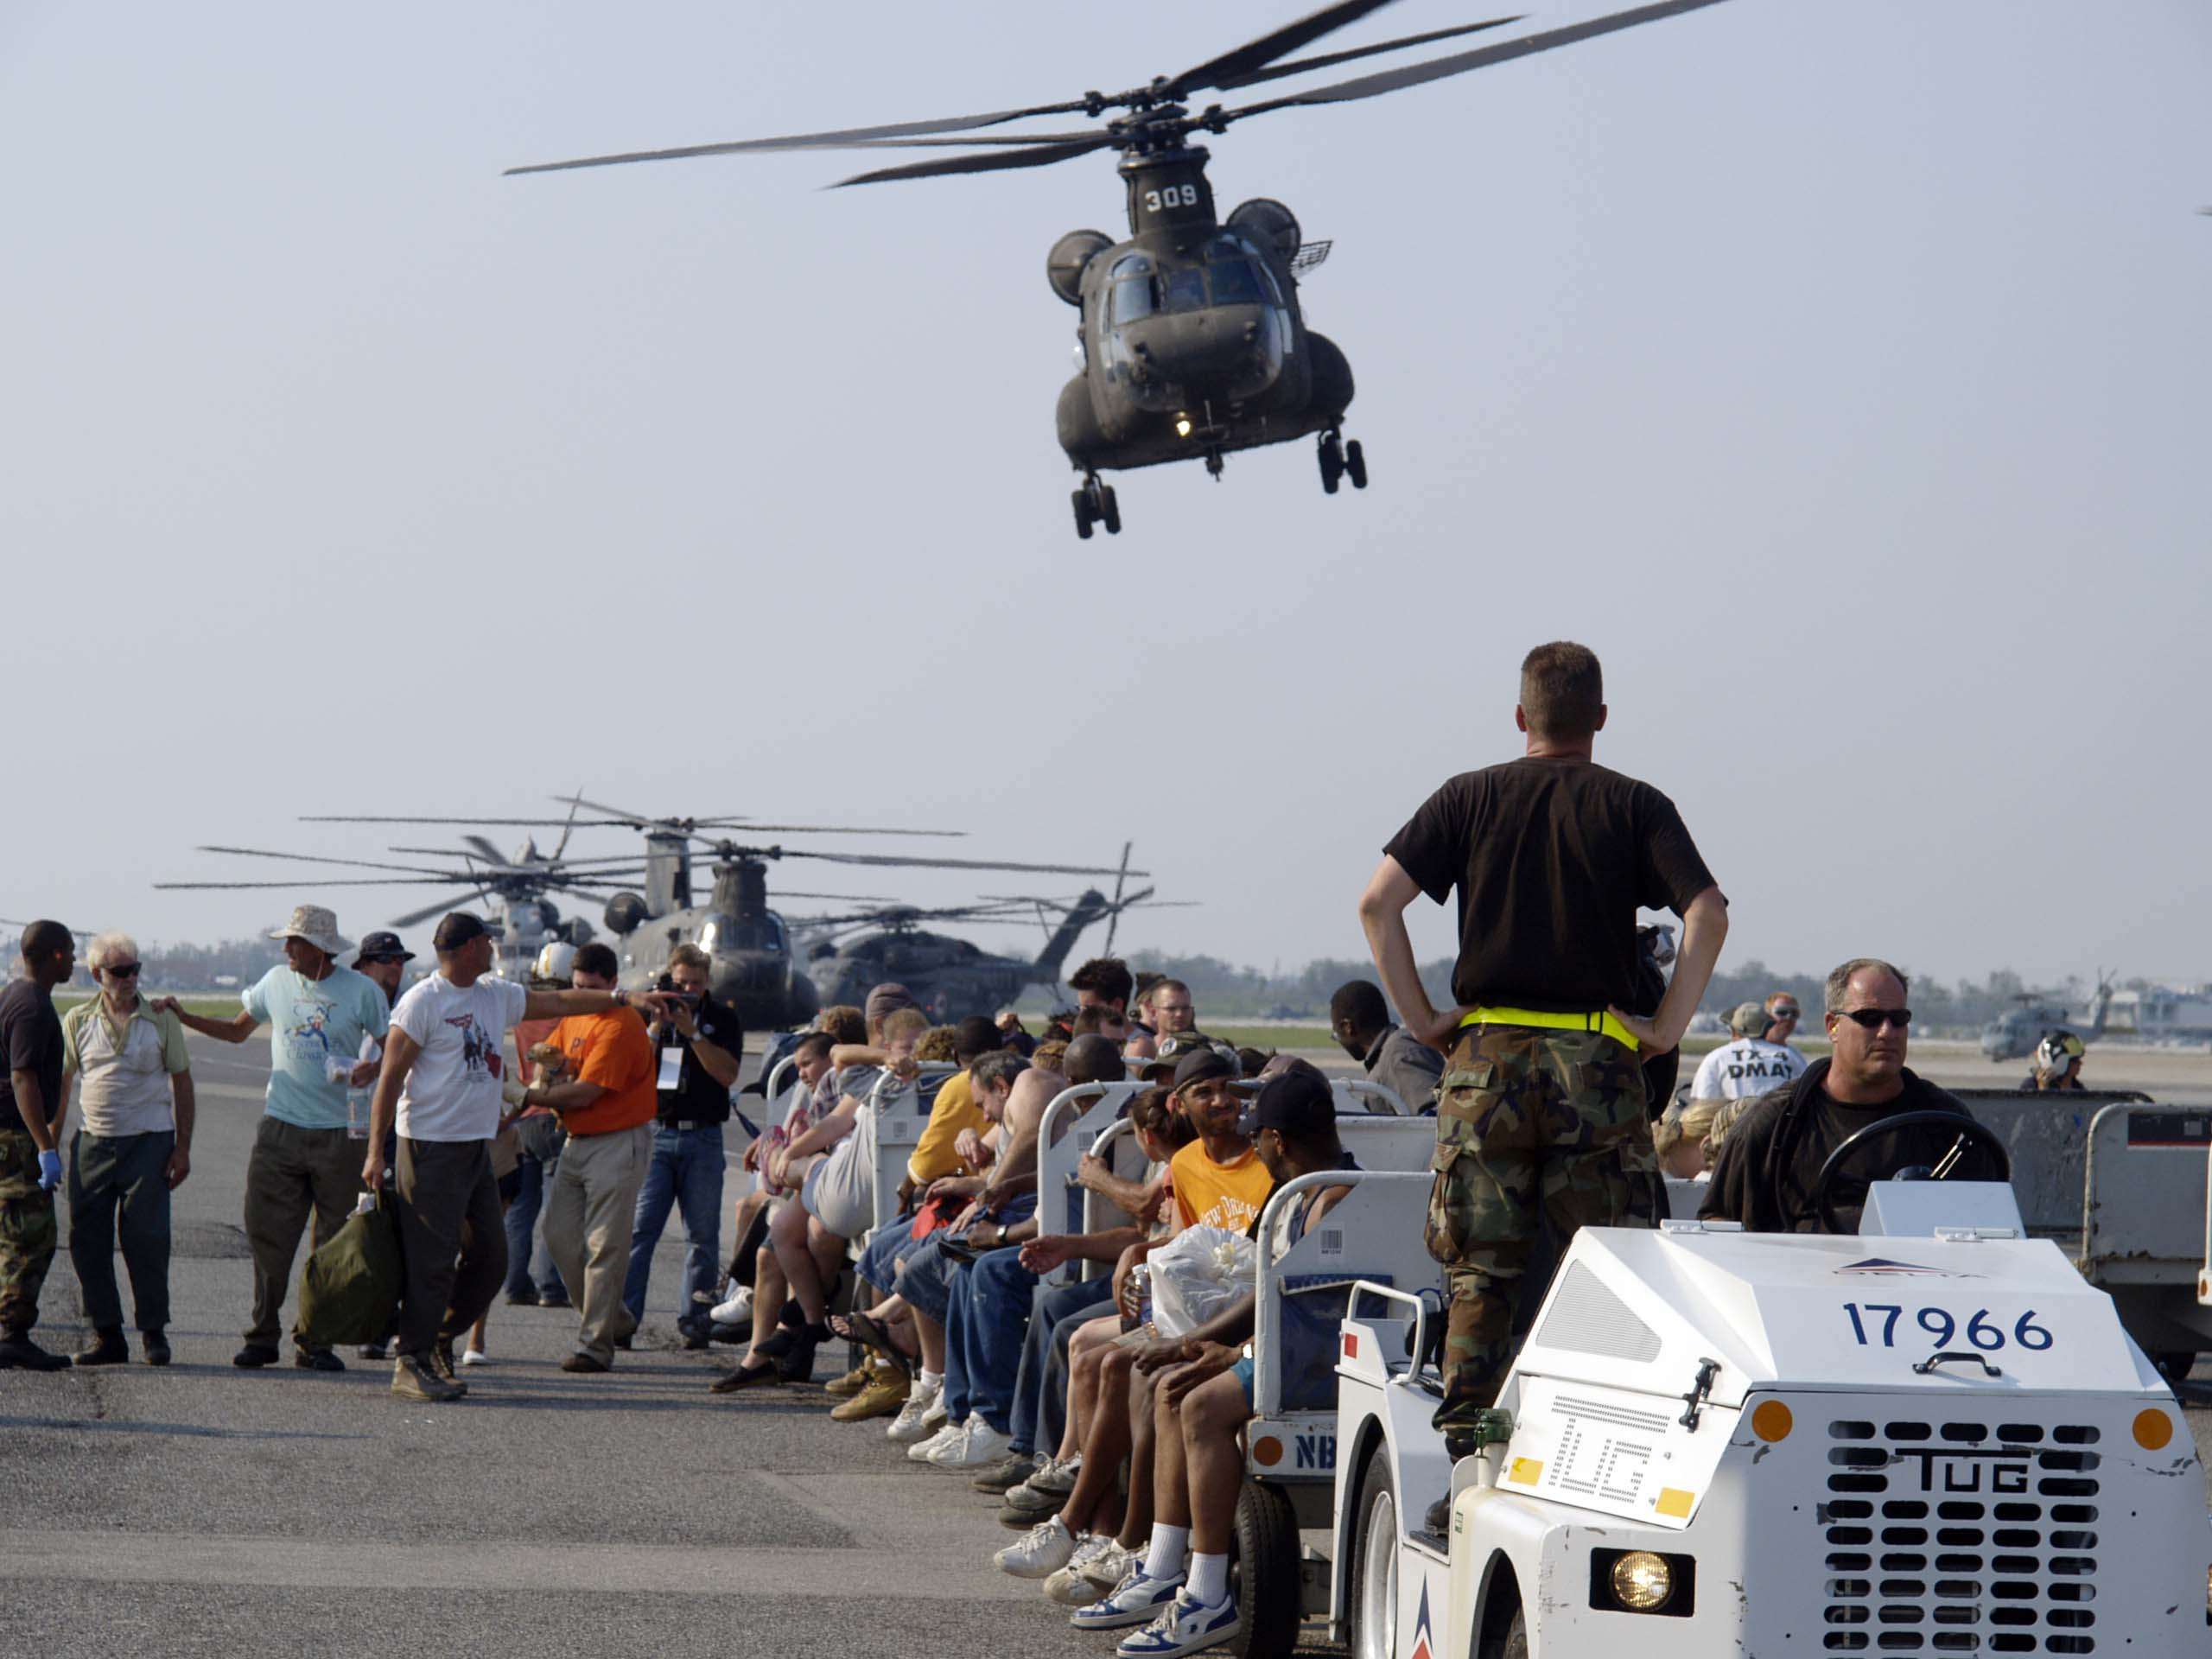 http://upload.wikimedia.org/wikipedia/commons/5/5a/Survivors_of_hurricane_Katrina_arrive_at_New_Orleans_Armstrong_Airport_14592.jpg